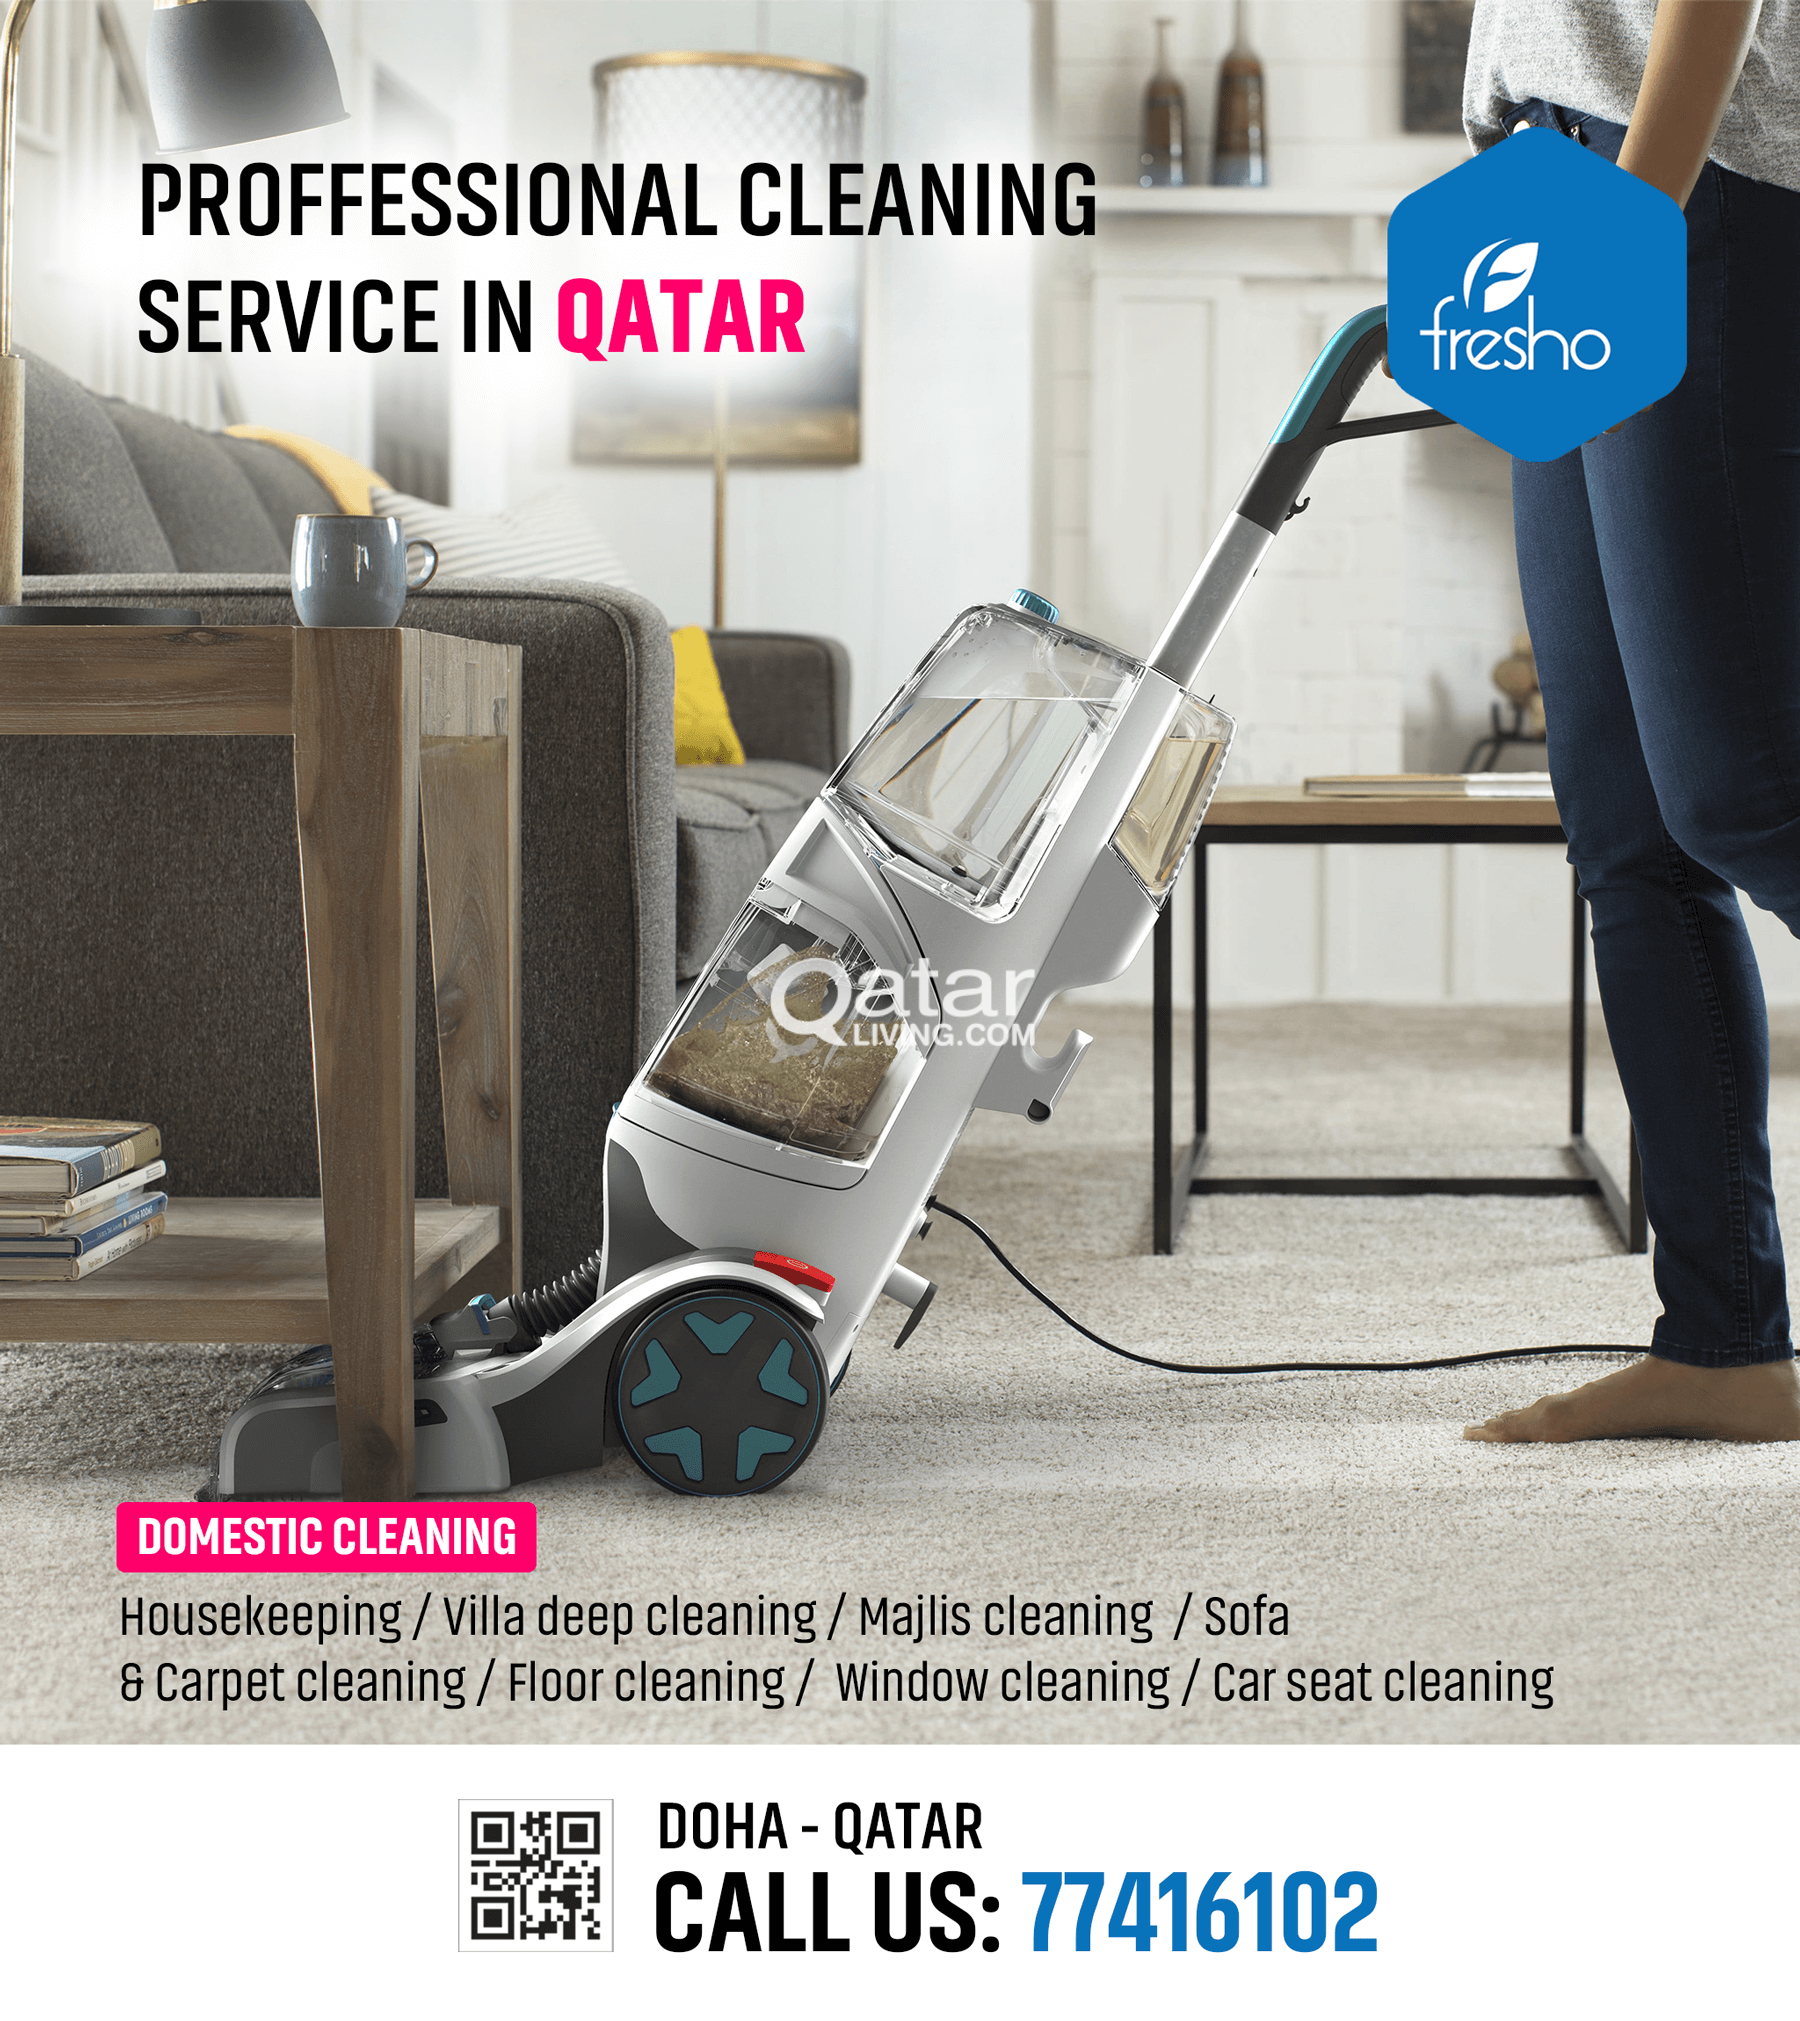 Professional Cleaning Service in Qatar Call us now 77416102